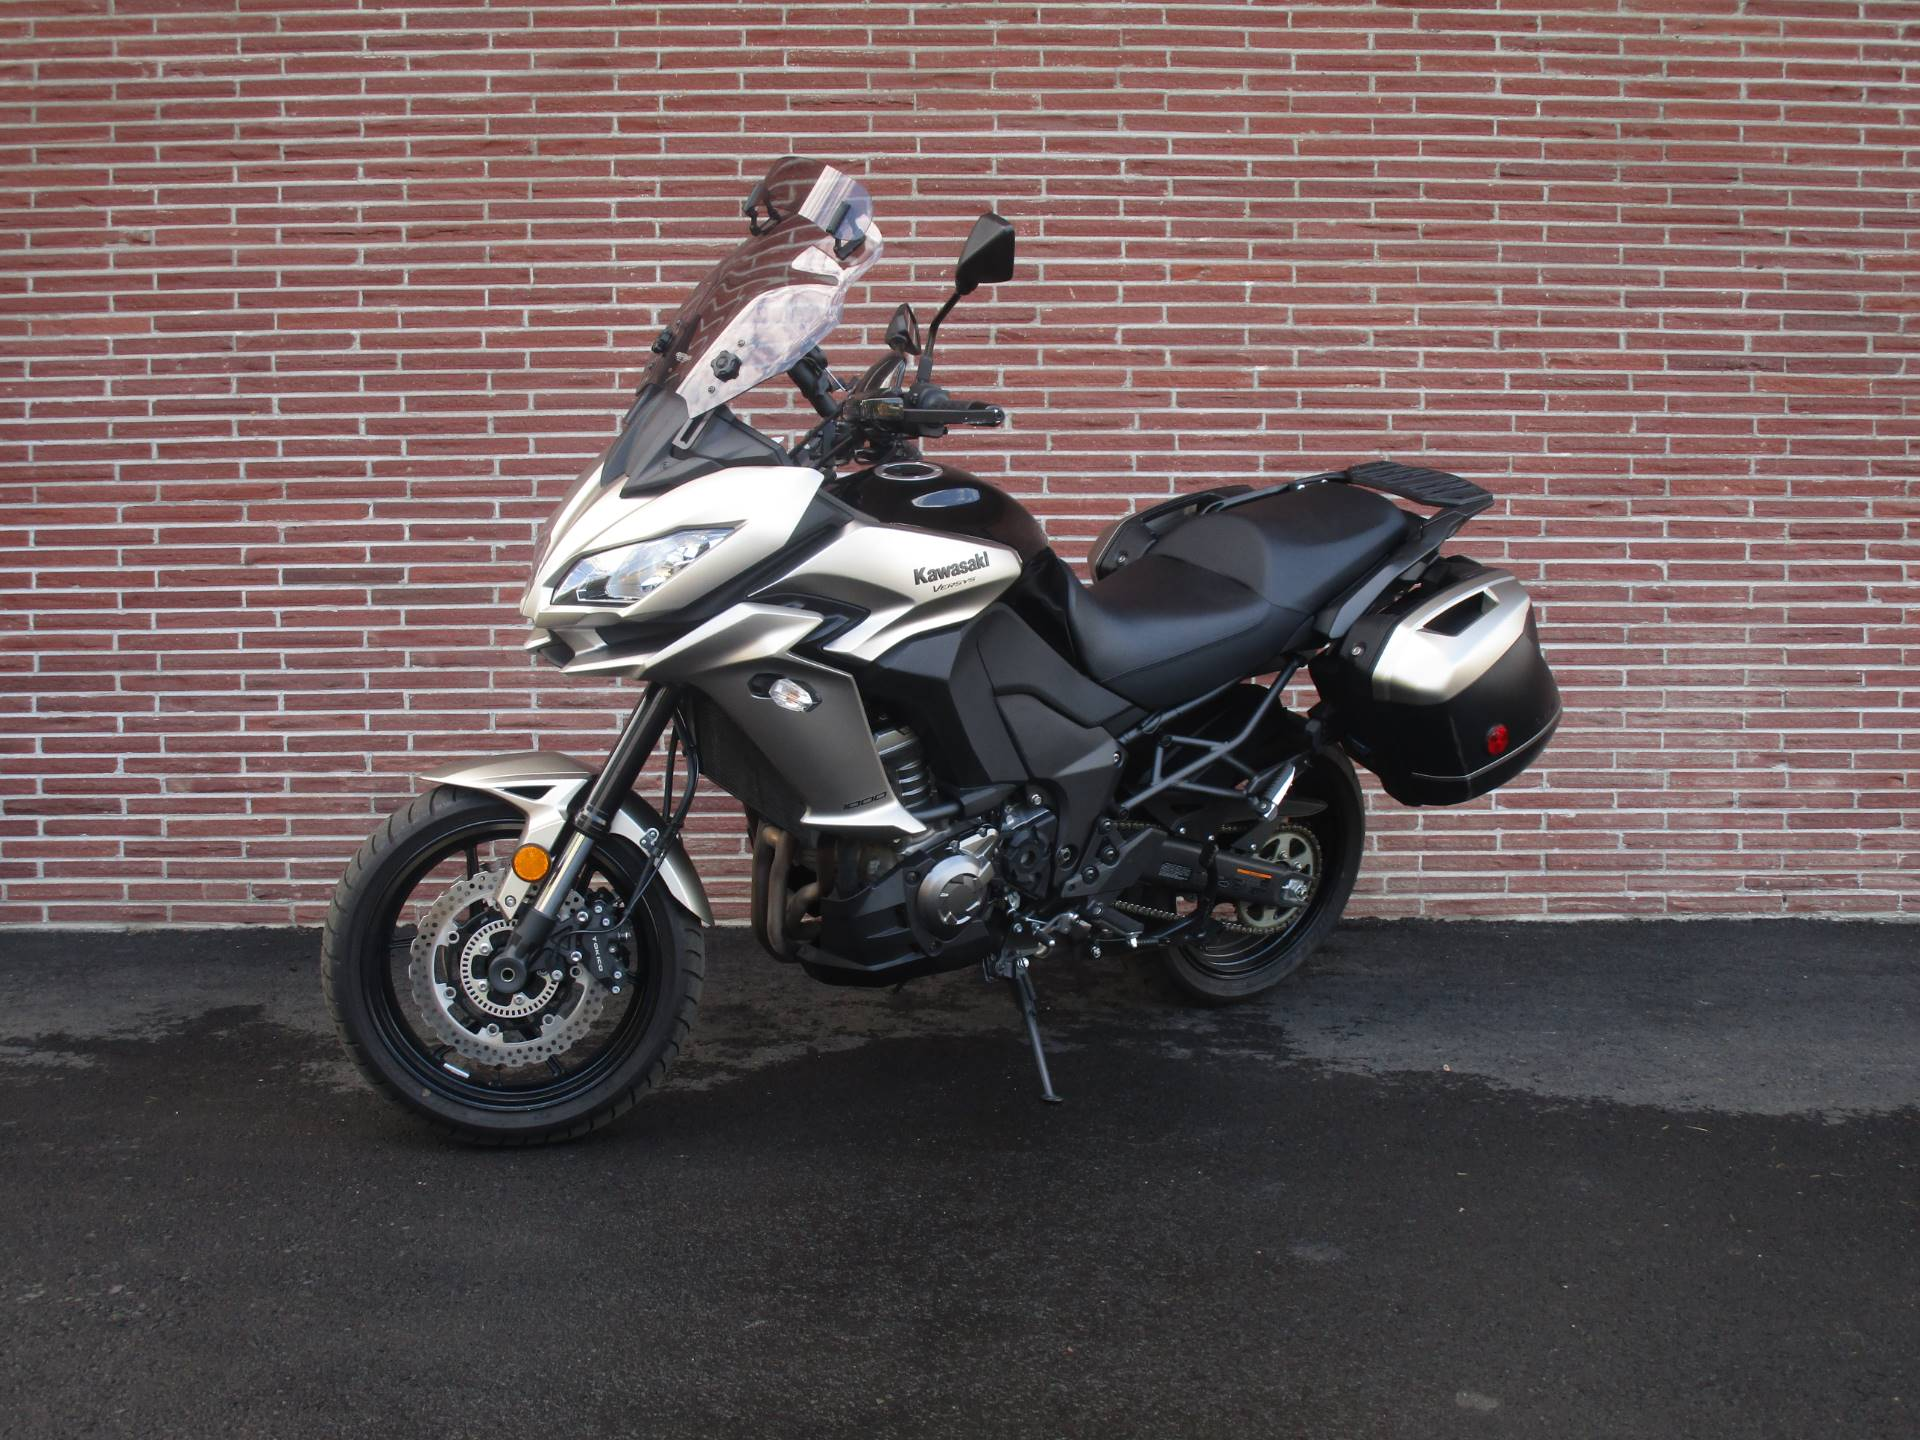 2016 Kawasaki Versys 1000 LT in Bellevue, Washington - Photo 3